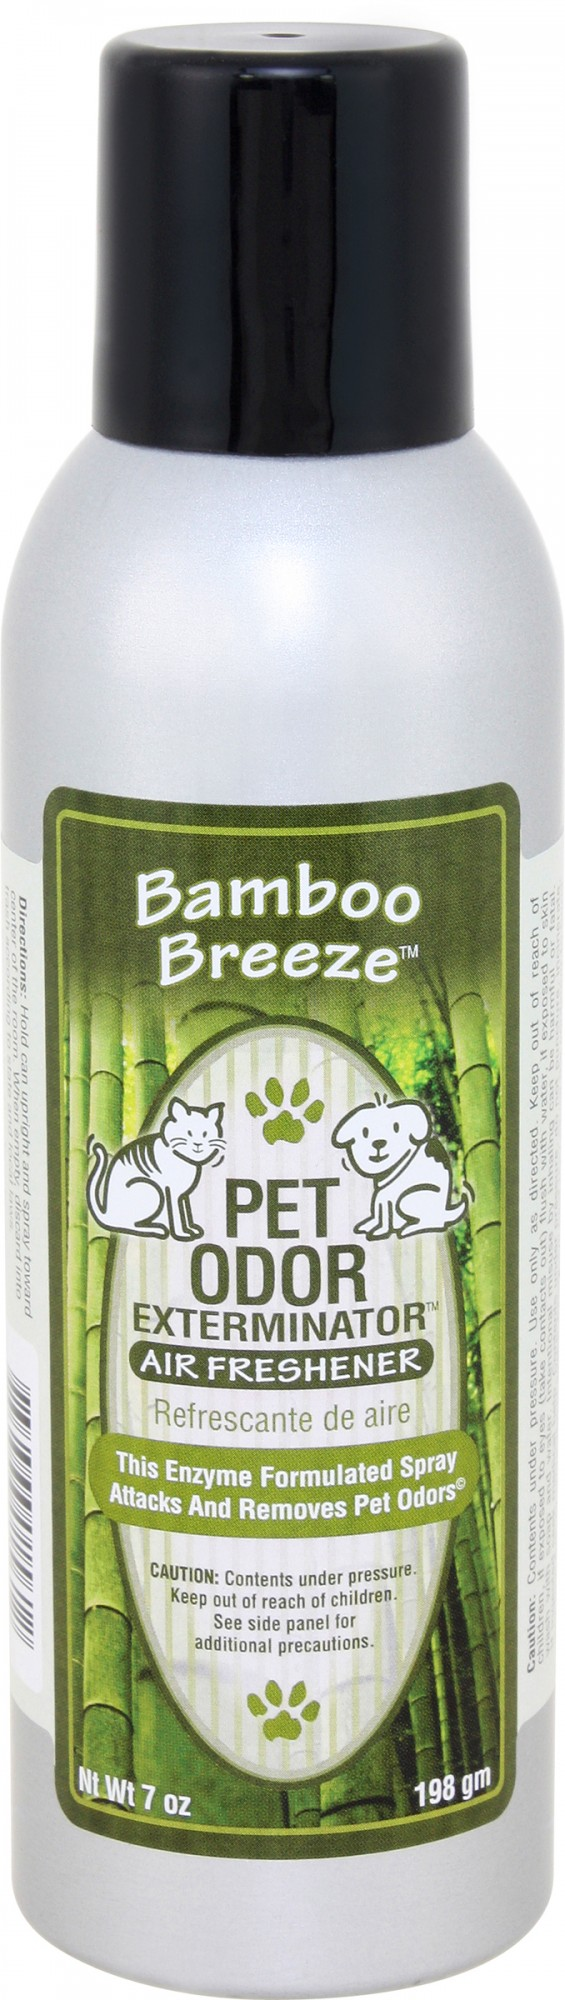 Pet Odor Exterminator Room Spray- 7 oz.